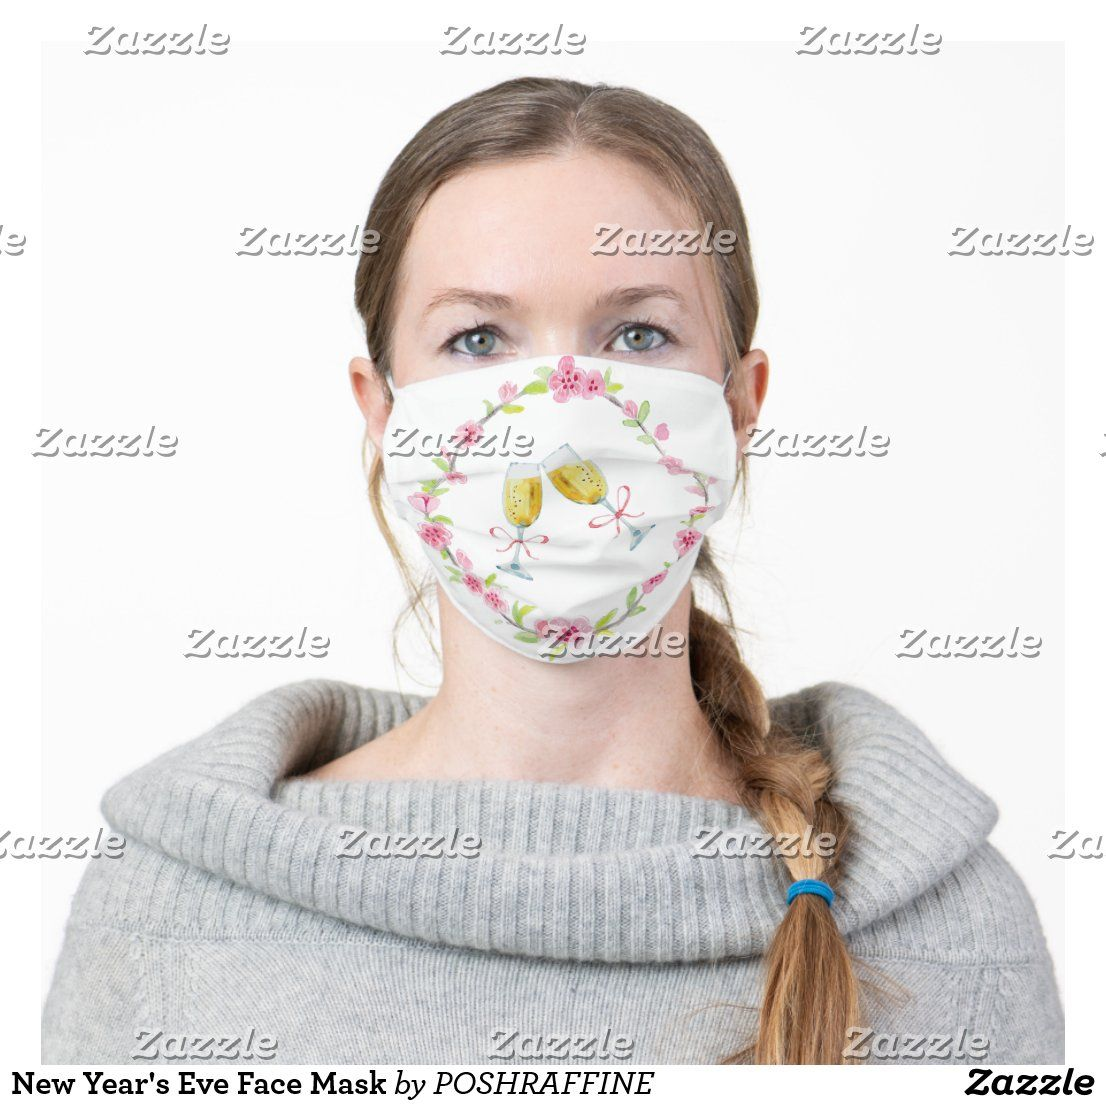 New Year S Eve Face Mask Zazzle Com In 2020 Face Mask Pink And Blue Flowers Mask